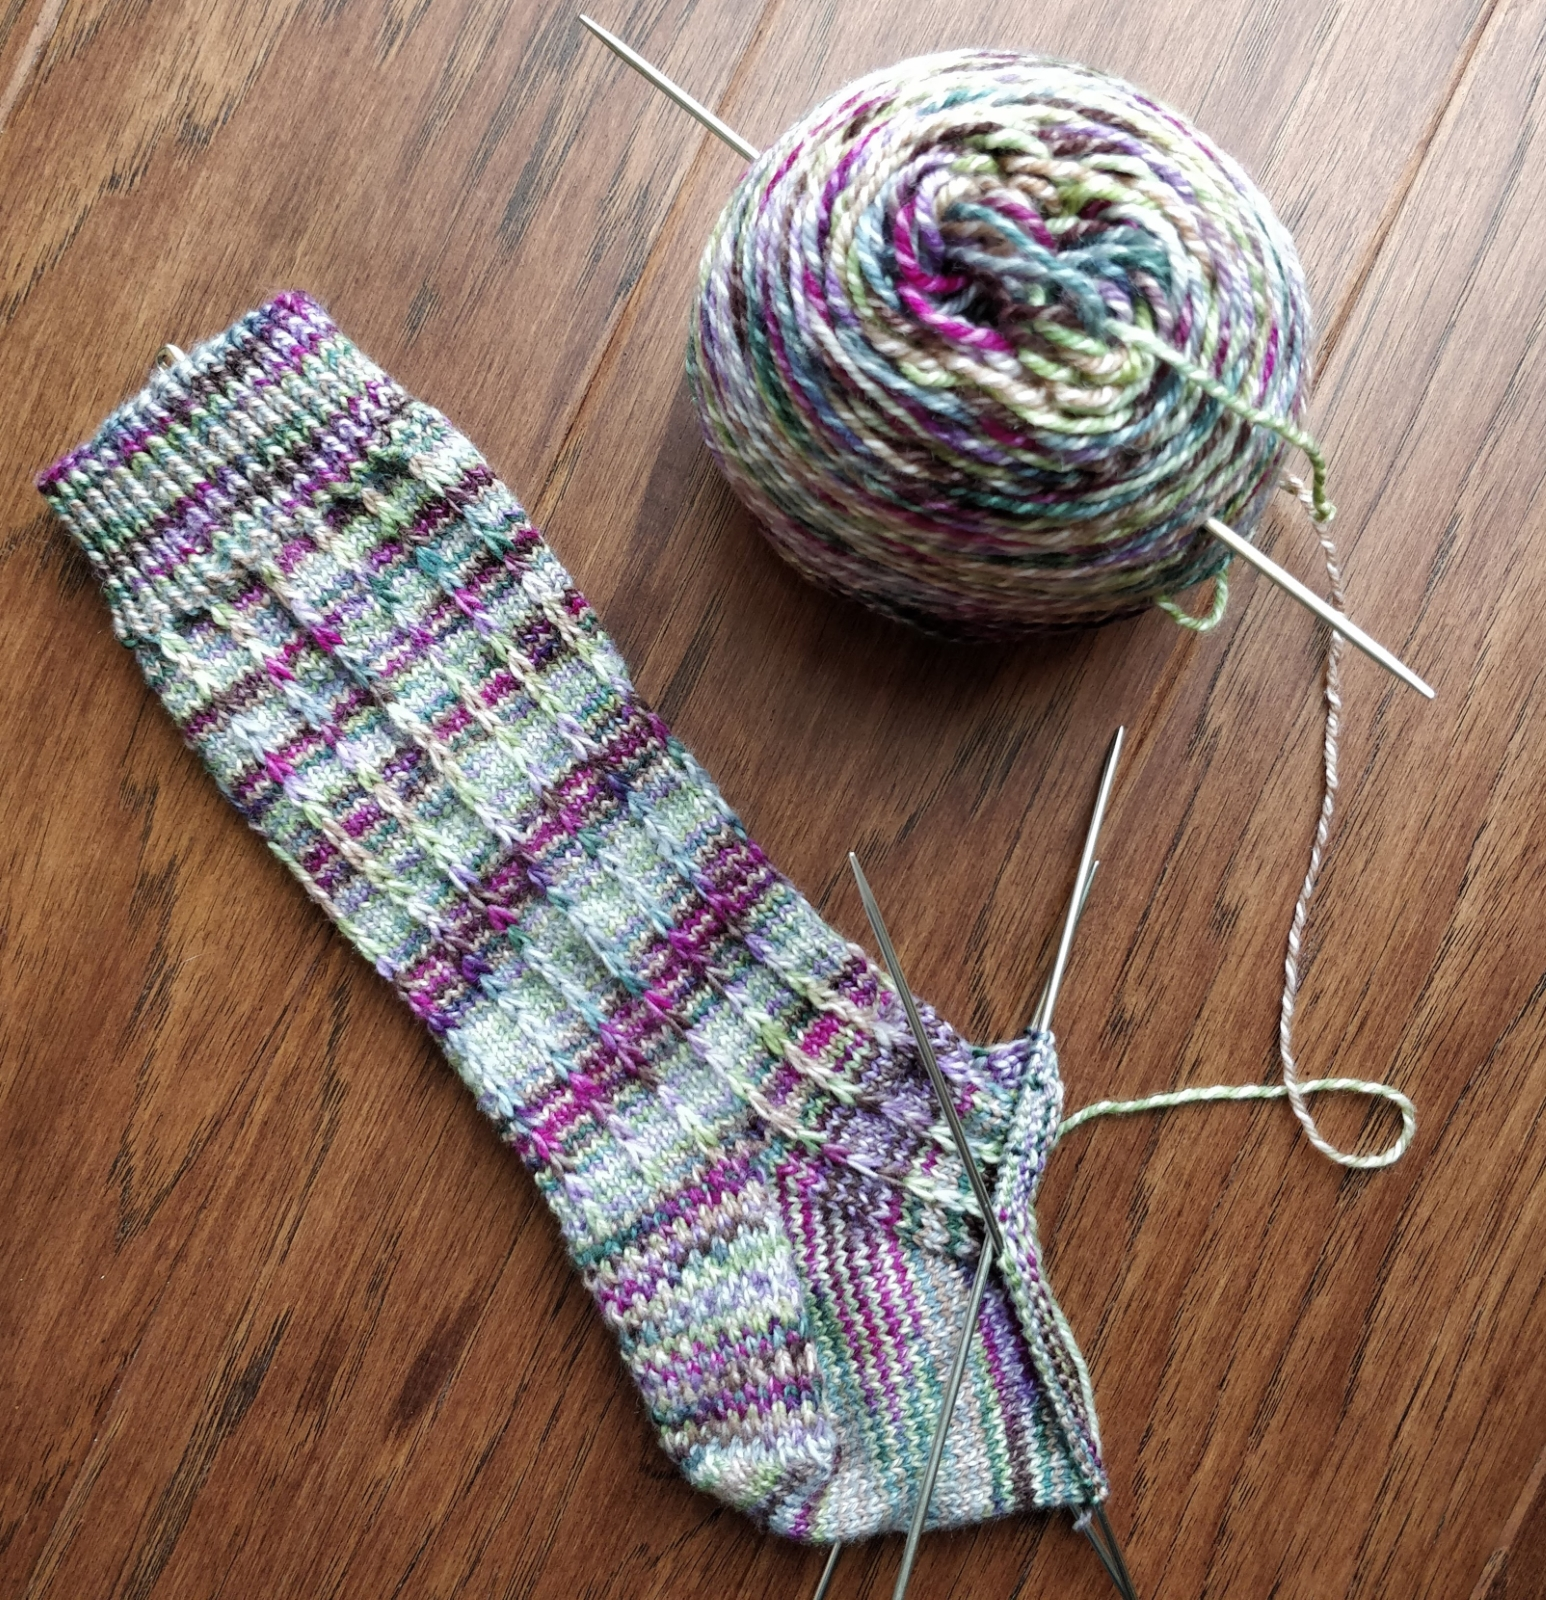 A half-finished sock with a half-finished ball of yarn on a wooden floor. The sock has spirals of pooling colour, pinks and purples over blue, sand, and green.